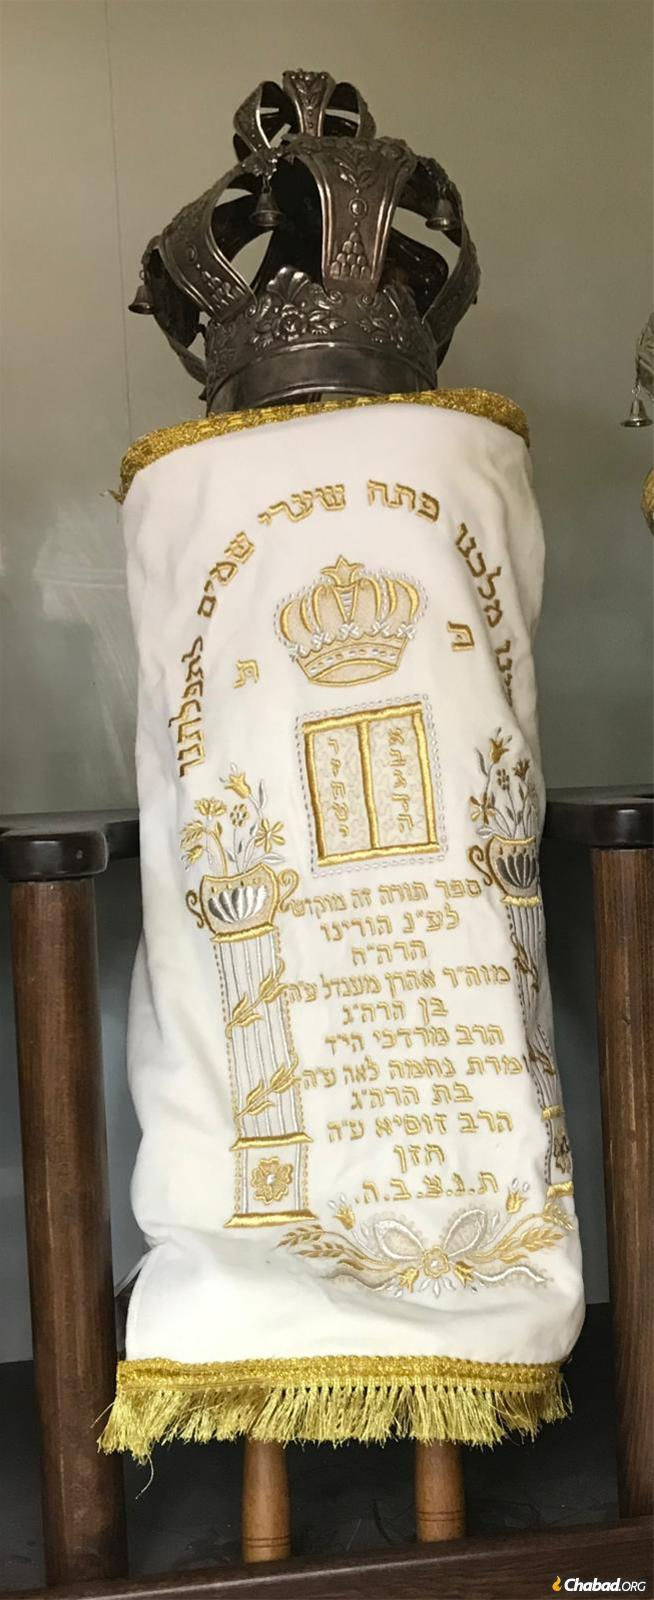 The Tula Torah in its white High Holiday mantle, dedicated to the memory of Rabbi Aharon and Nechamah Leah Chazan.